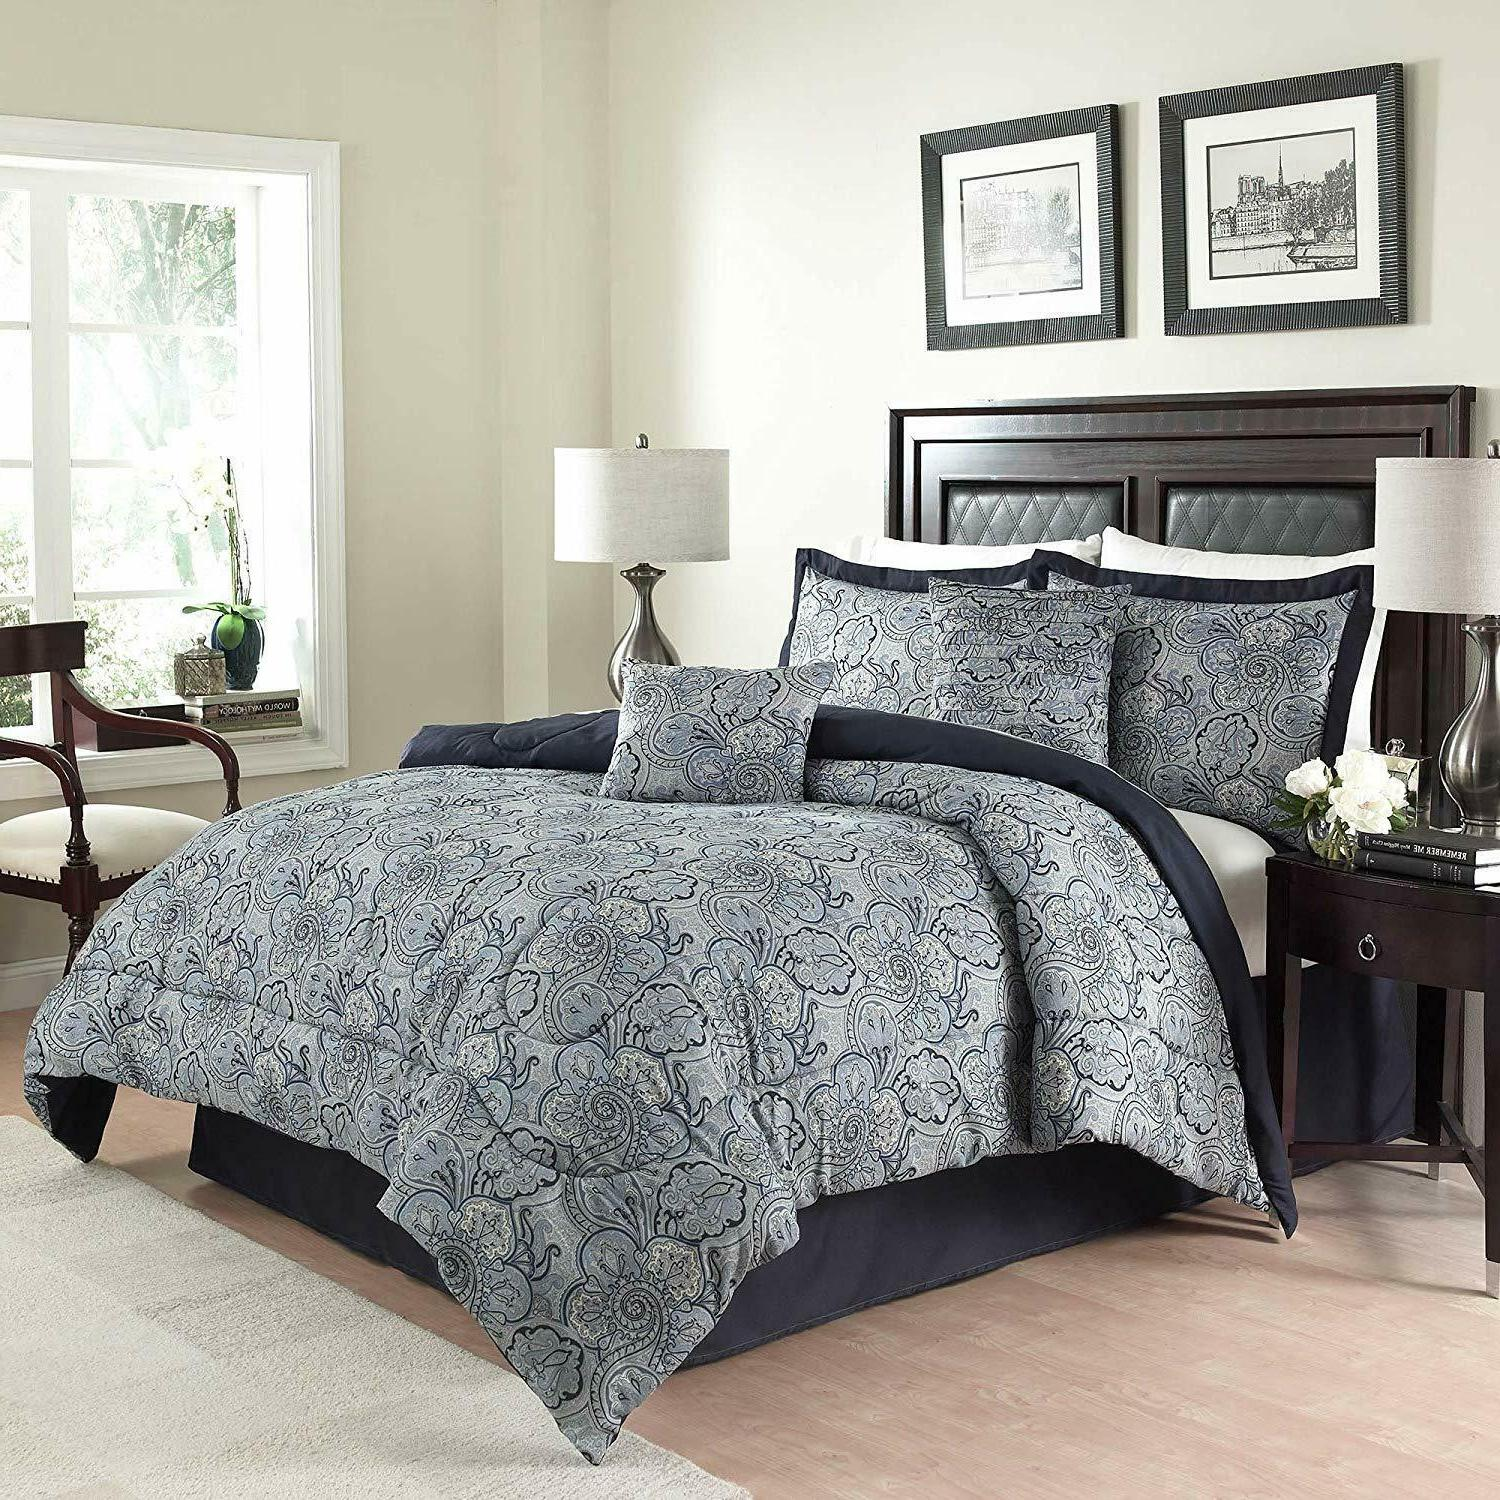 Comforter Set, King,Traditions By Waverly 14413BEDDKNGPOR Pa